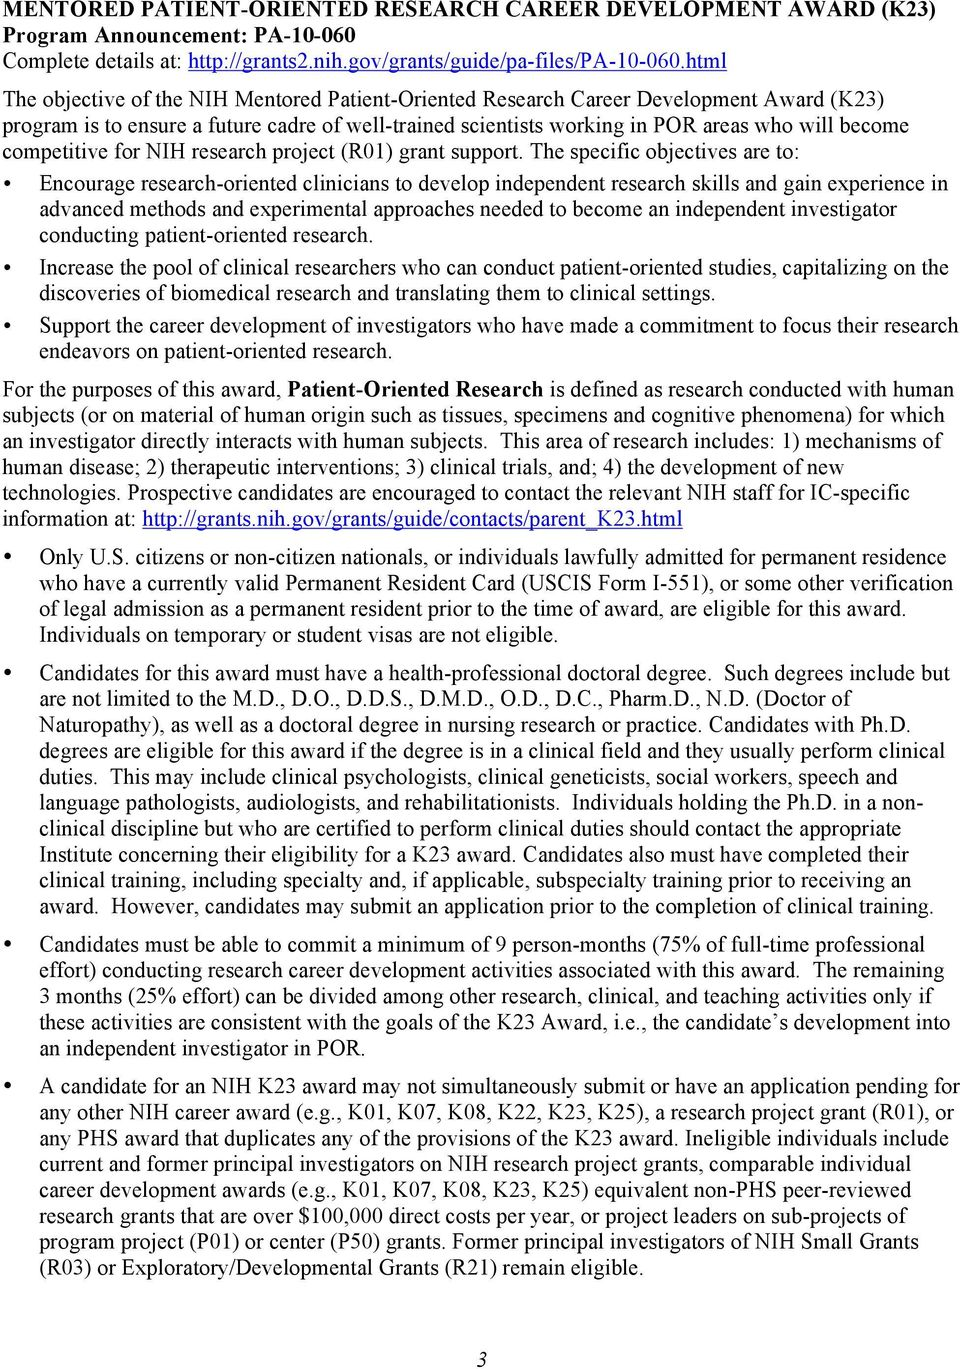 competitive for NIH research project (R01) grant support.